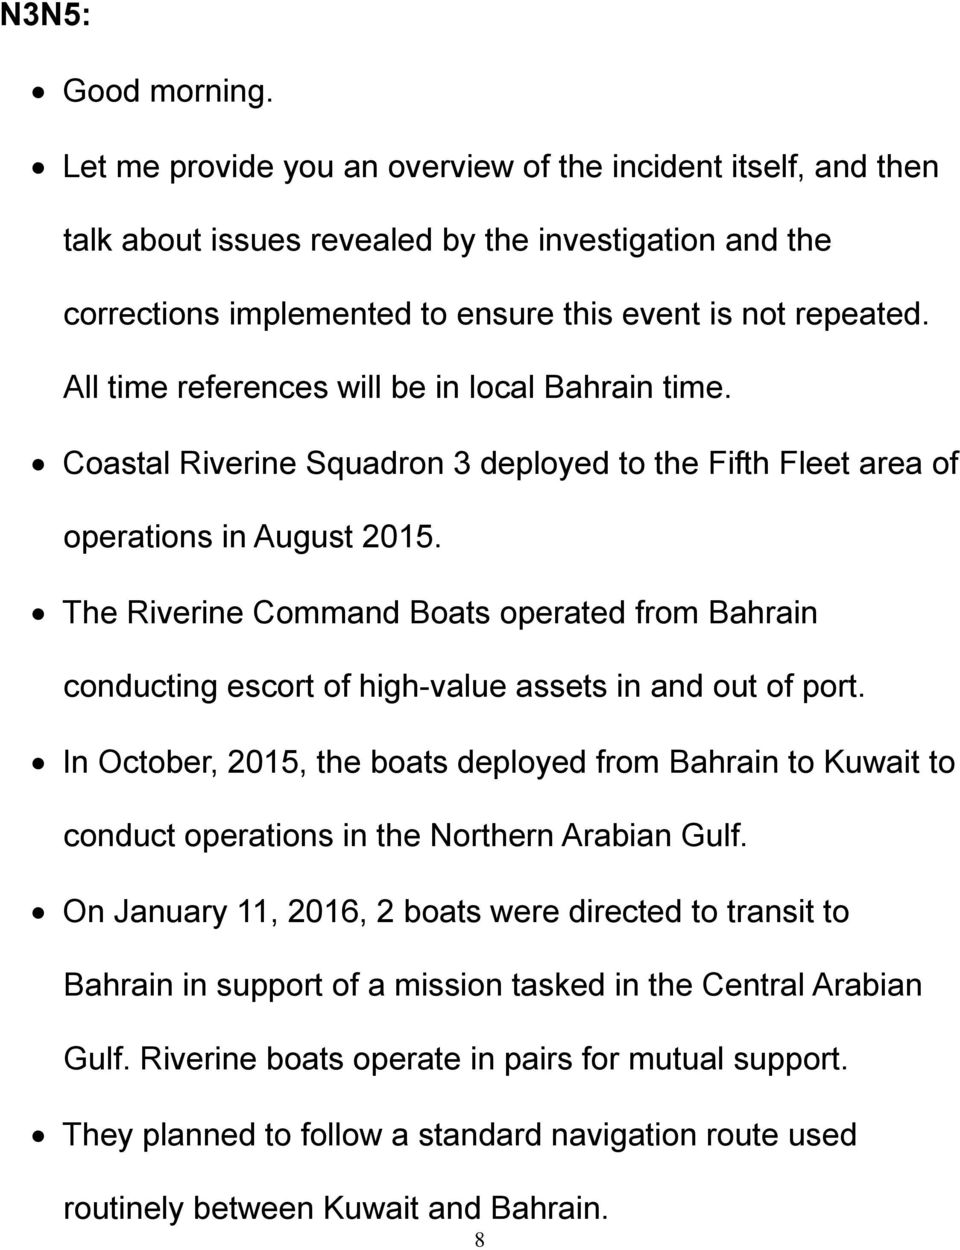 All time references will be in local Bahrain time. Coastal Riverine Squadron 3 deployed to the Fifth Fleet area of operations in August 2015.